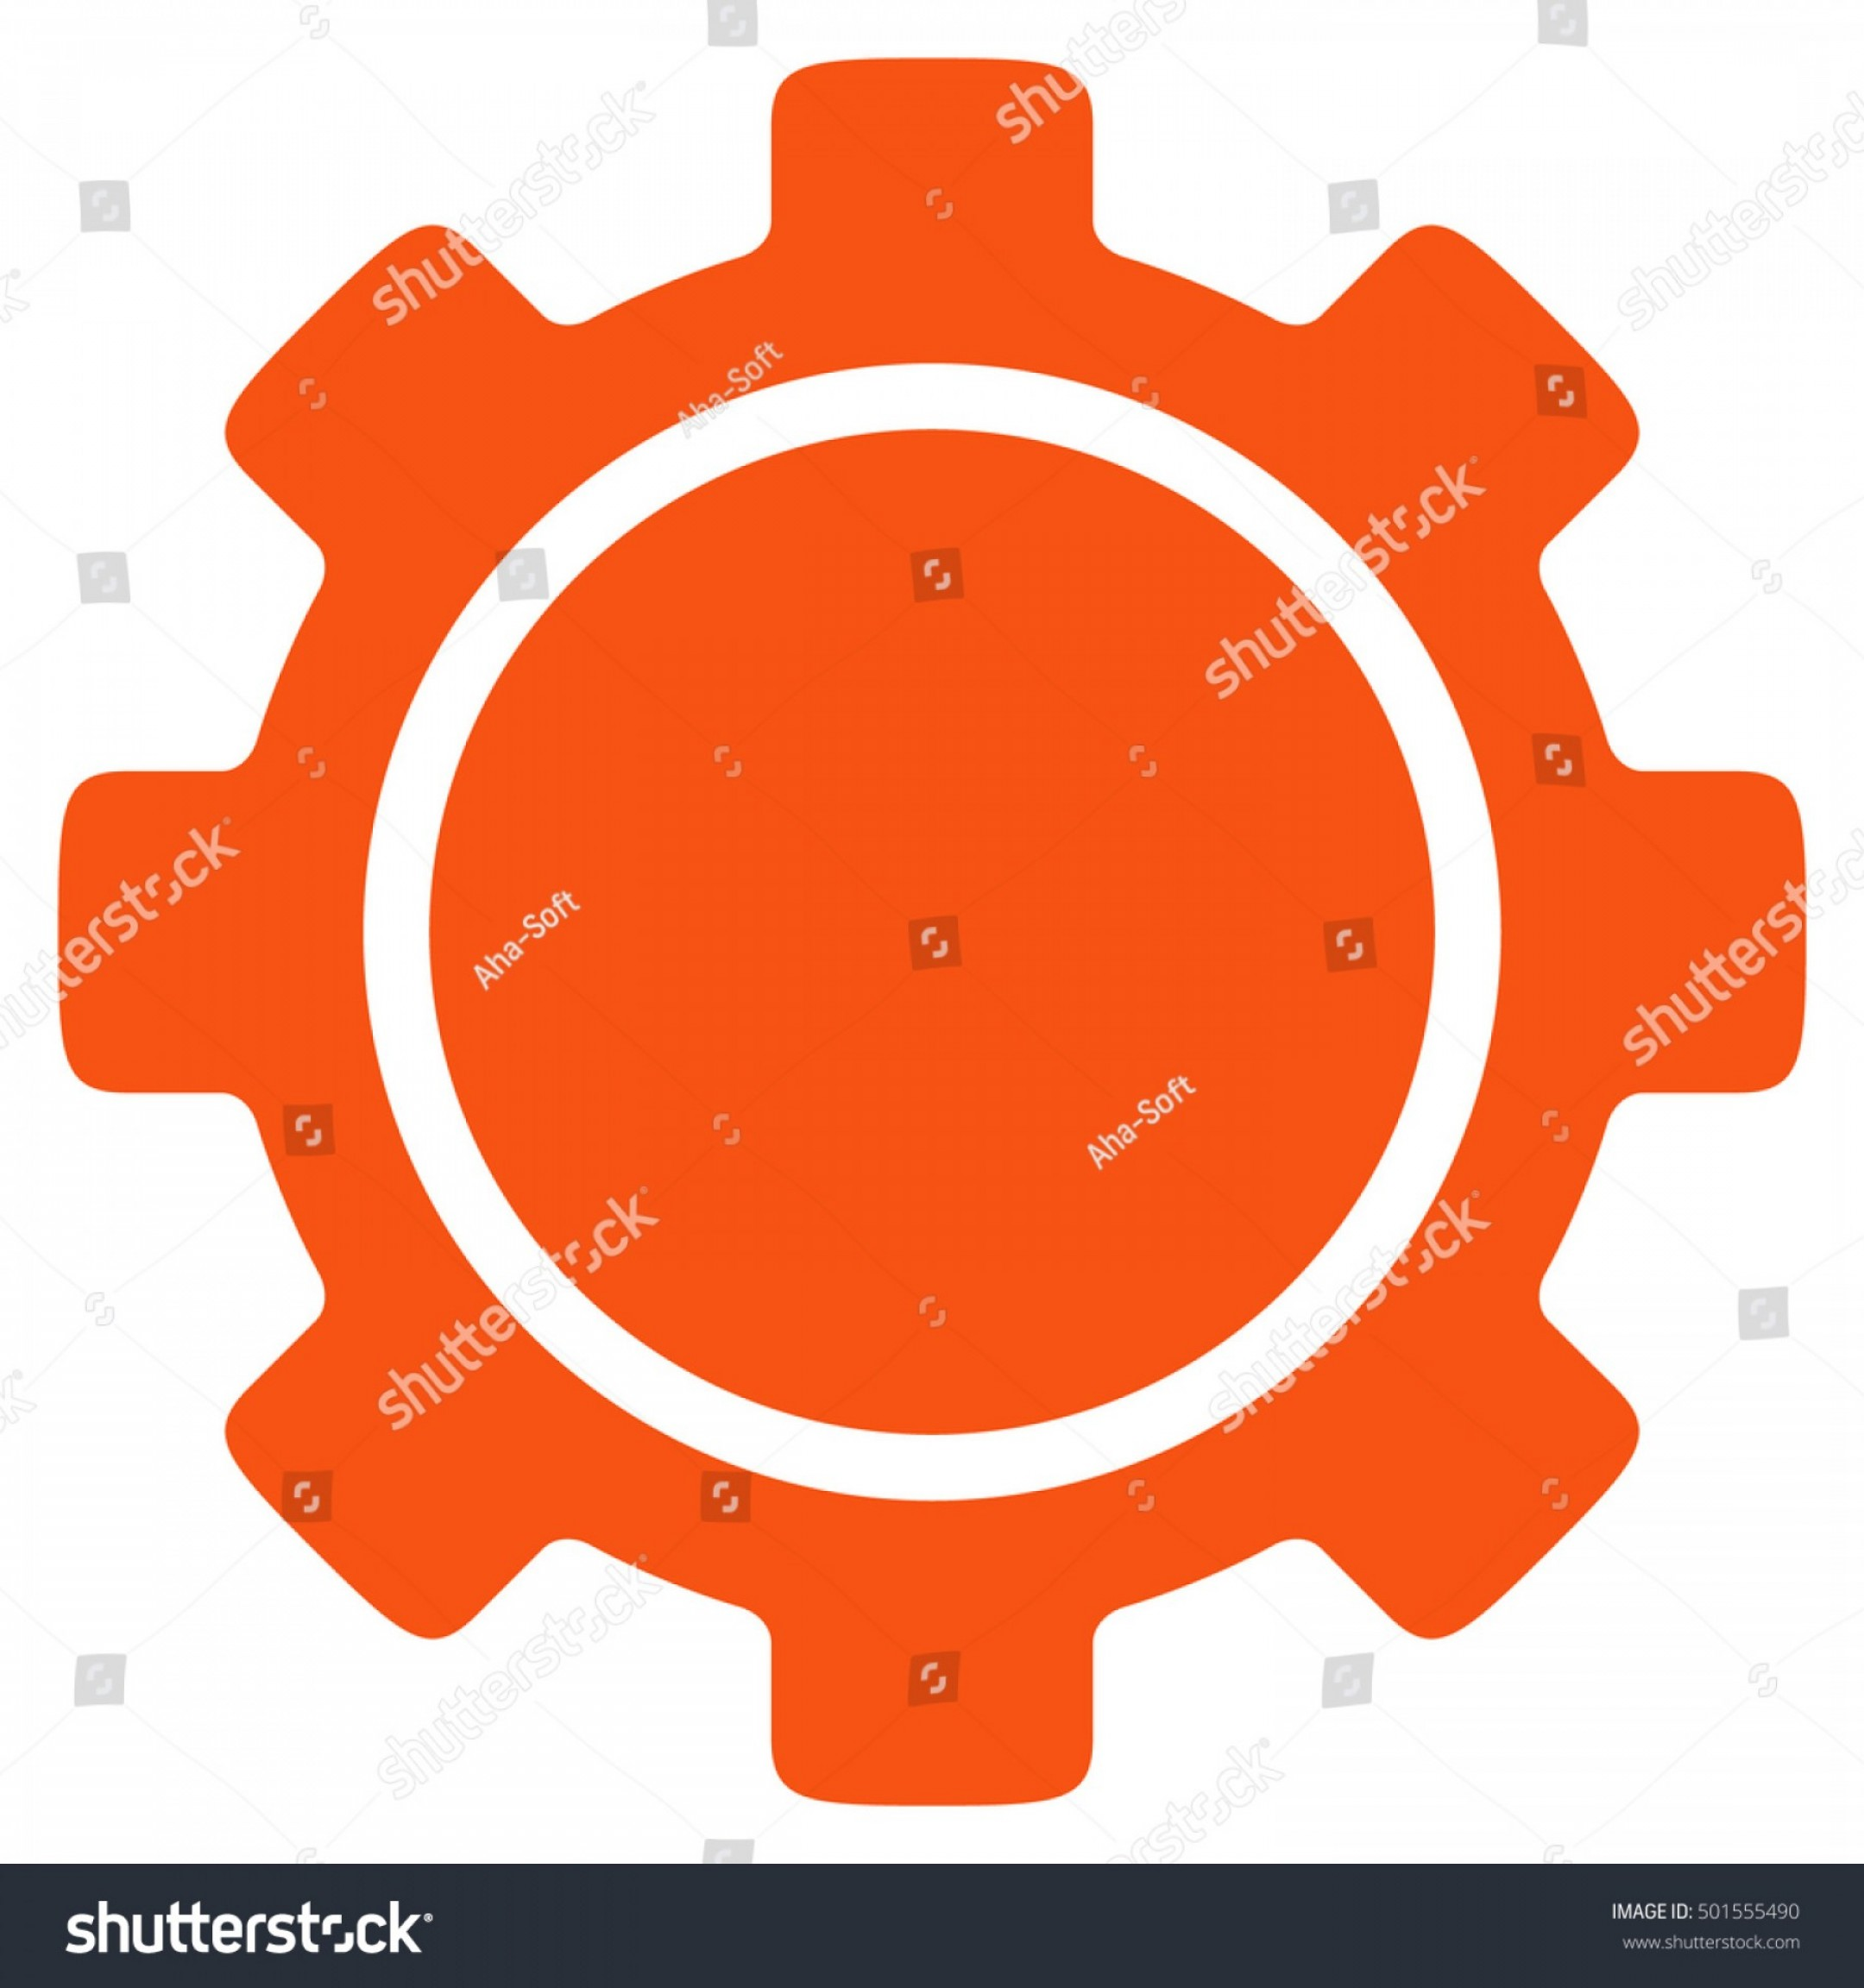 Vector Gear Graphics: Gear Vector Icon Style Flat Graphic